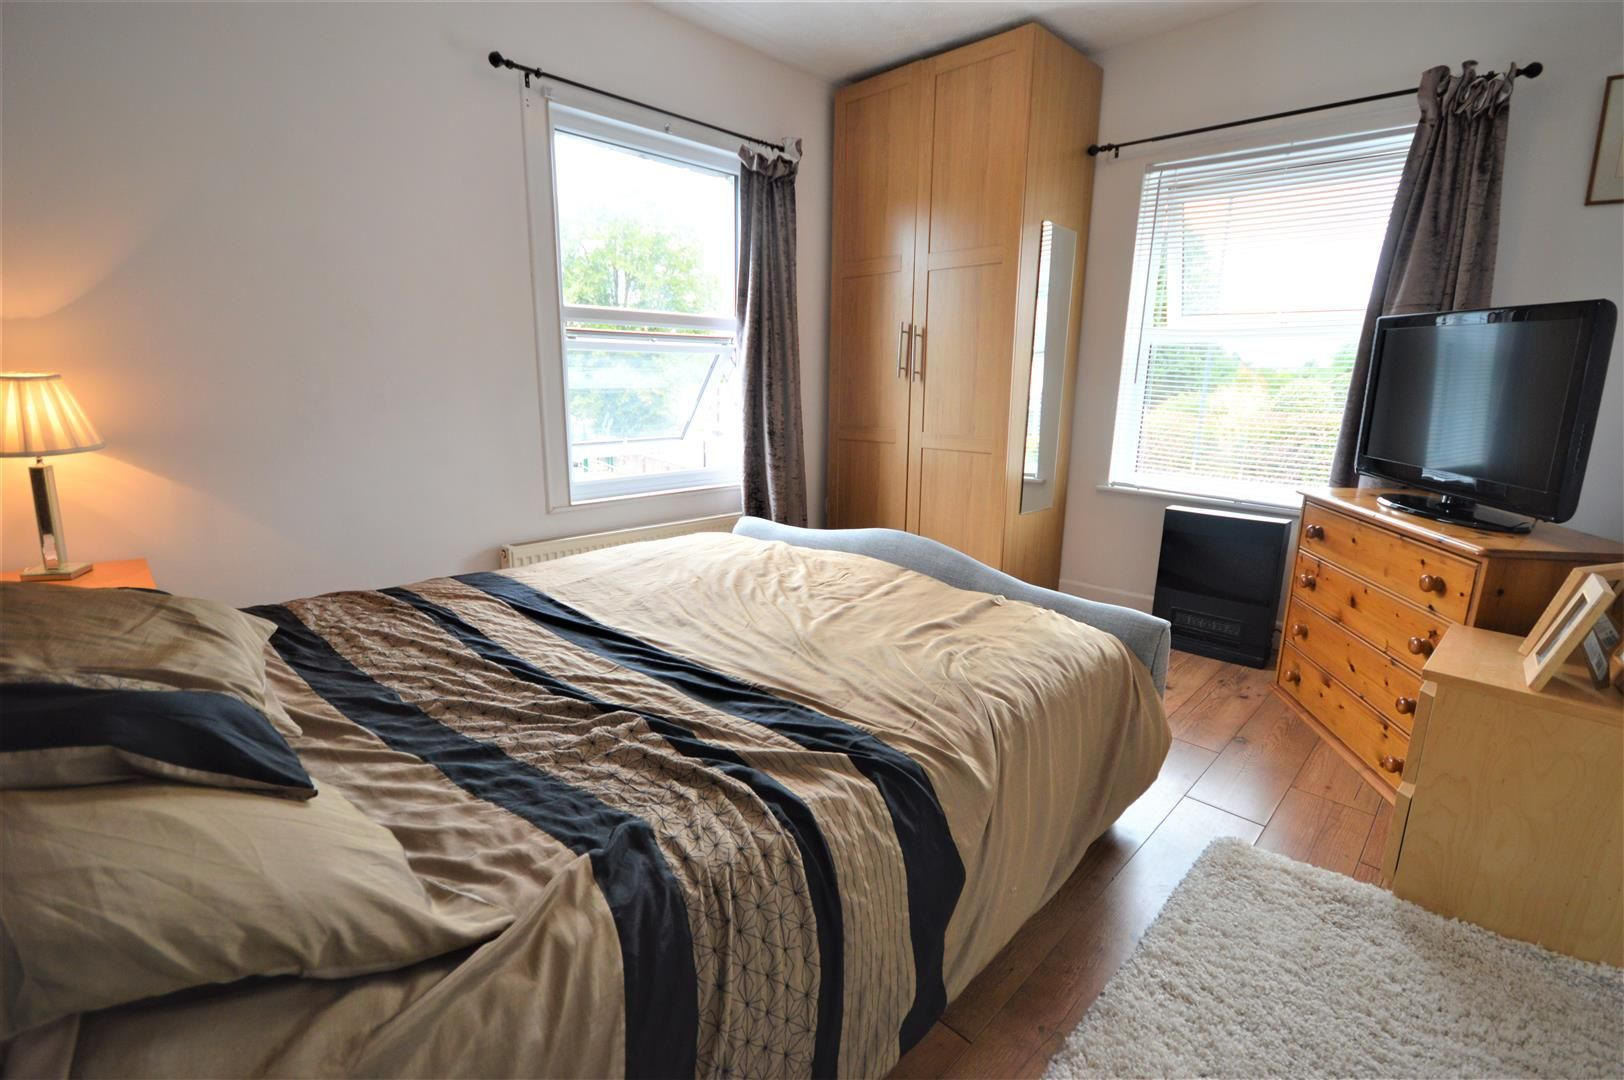 1 bed semi-detached for sale in Leominster  - Property Image 6